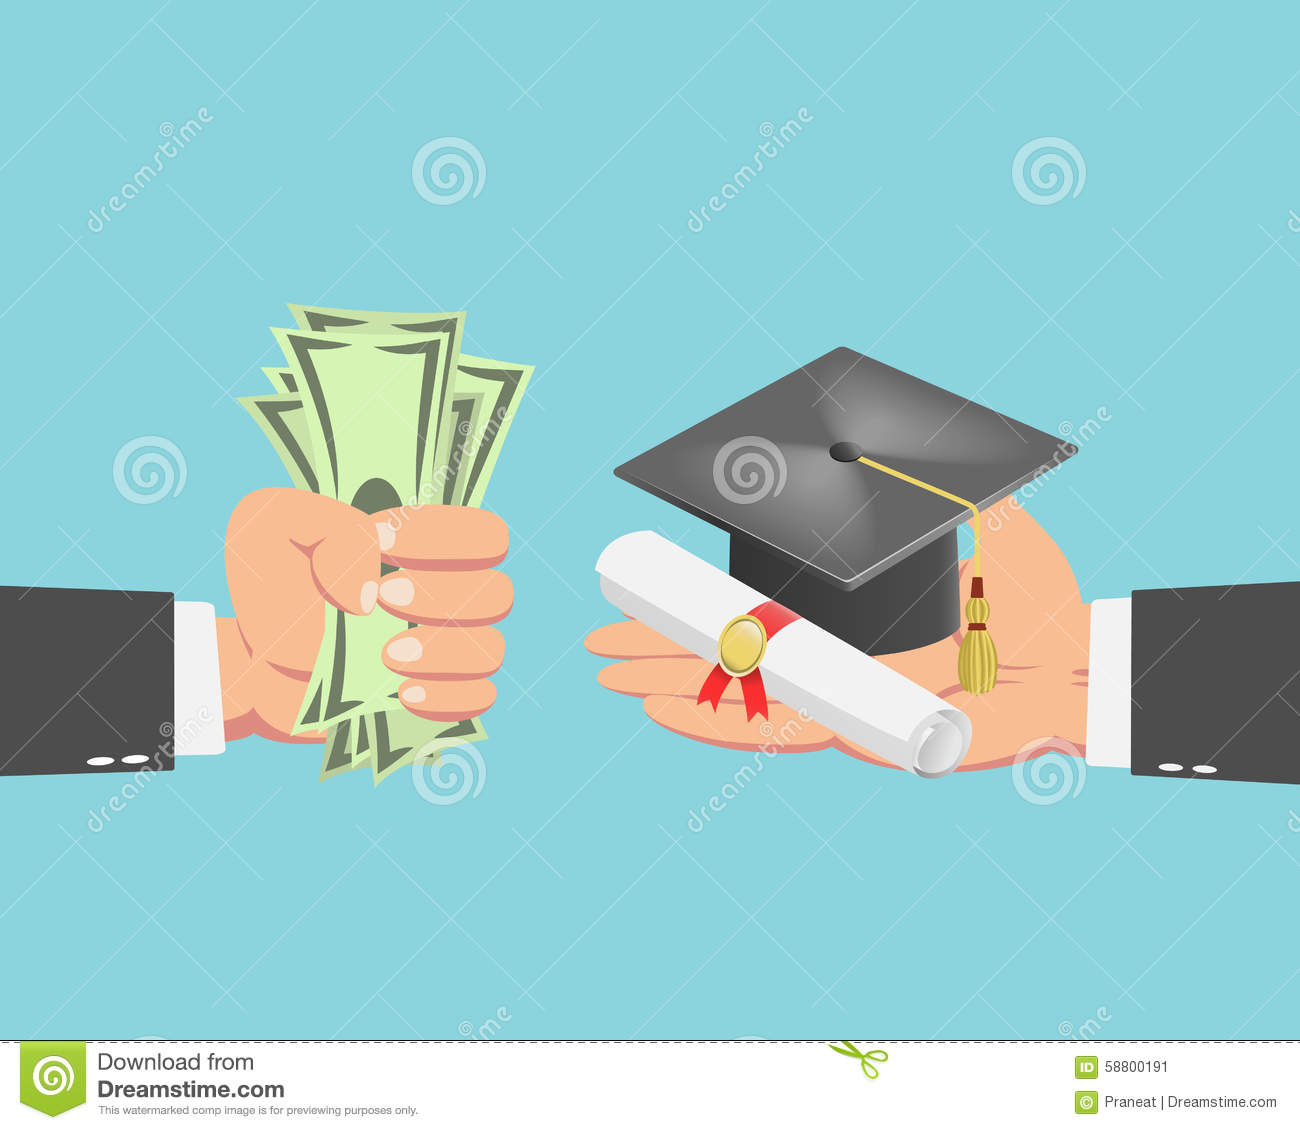 Image result for buying a diploma